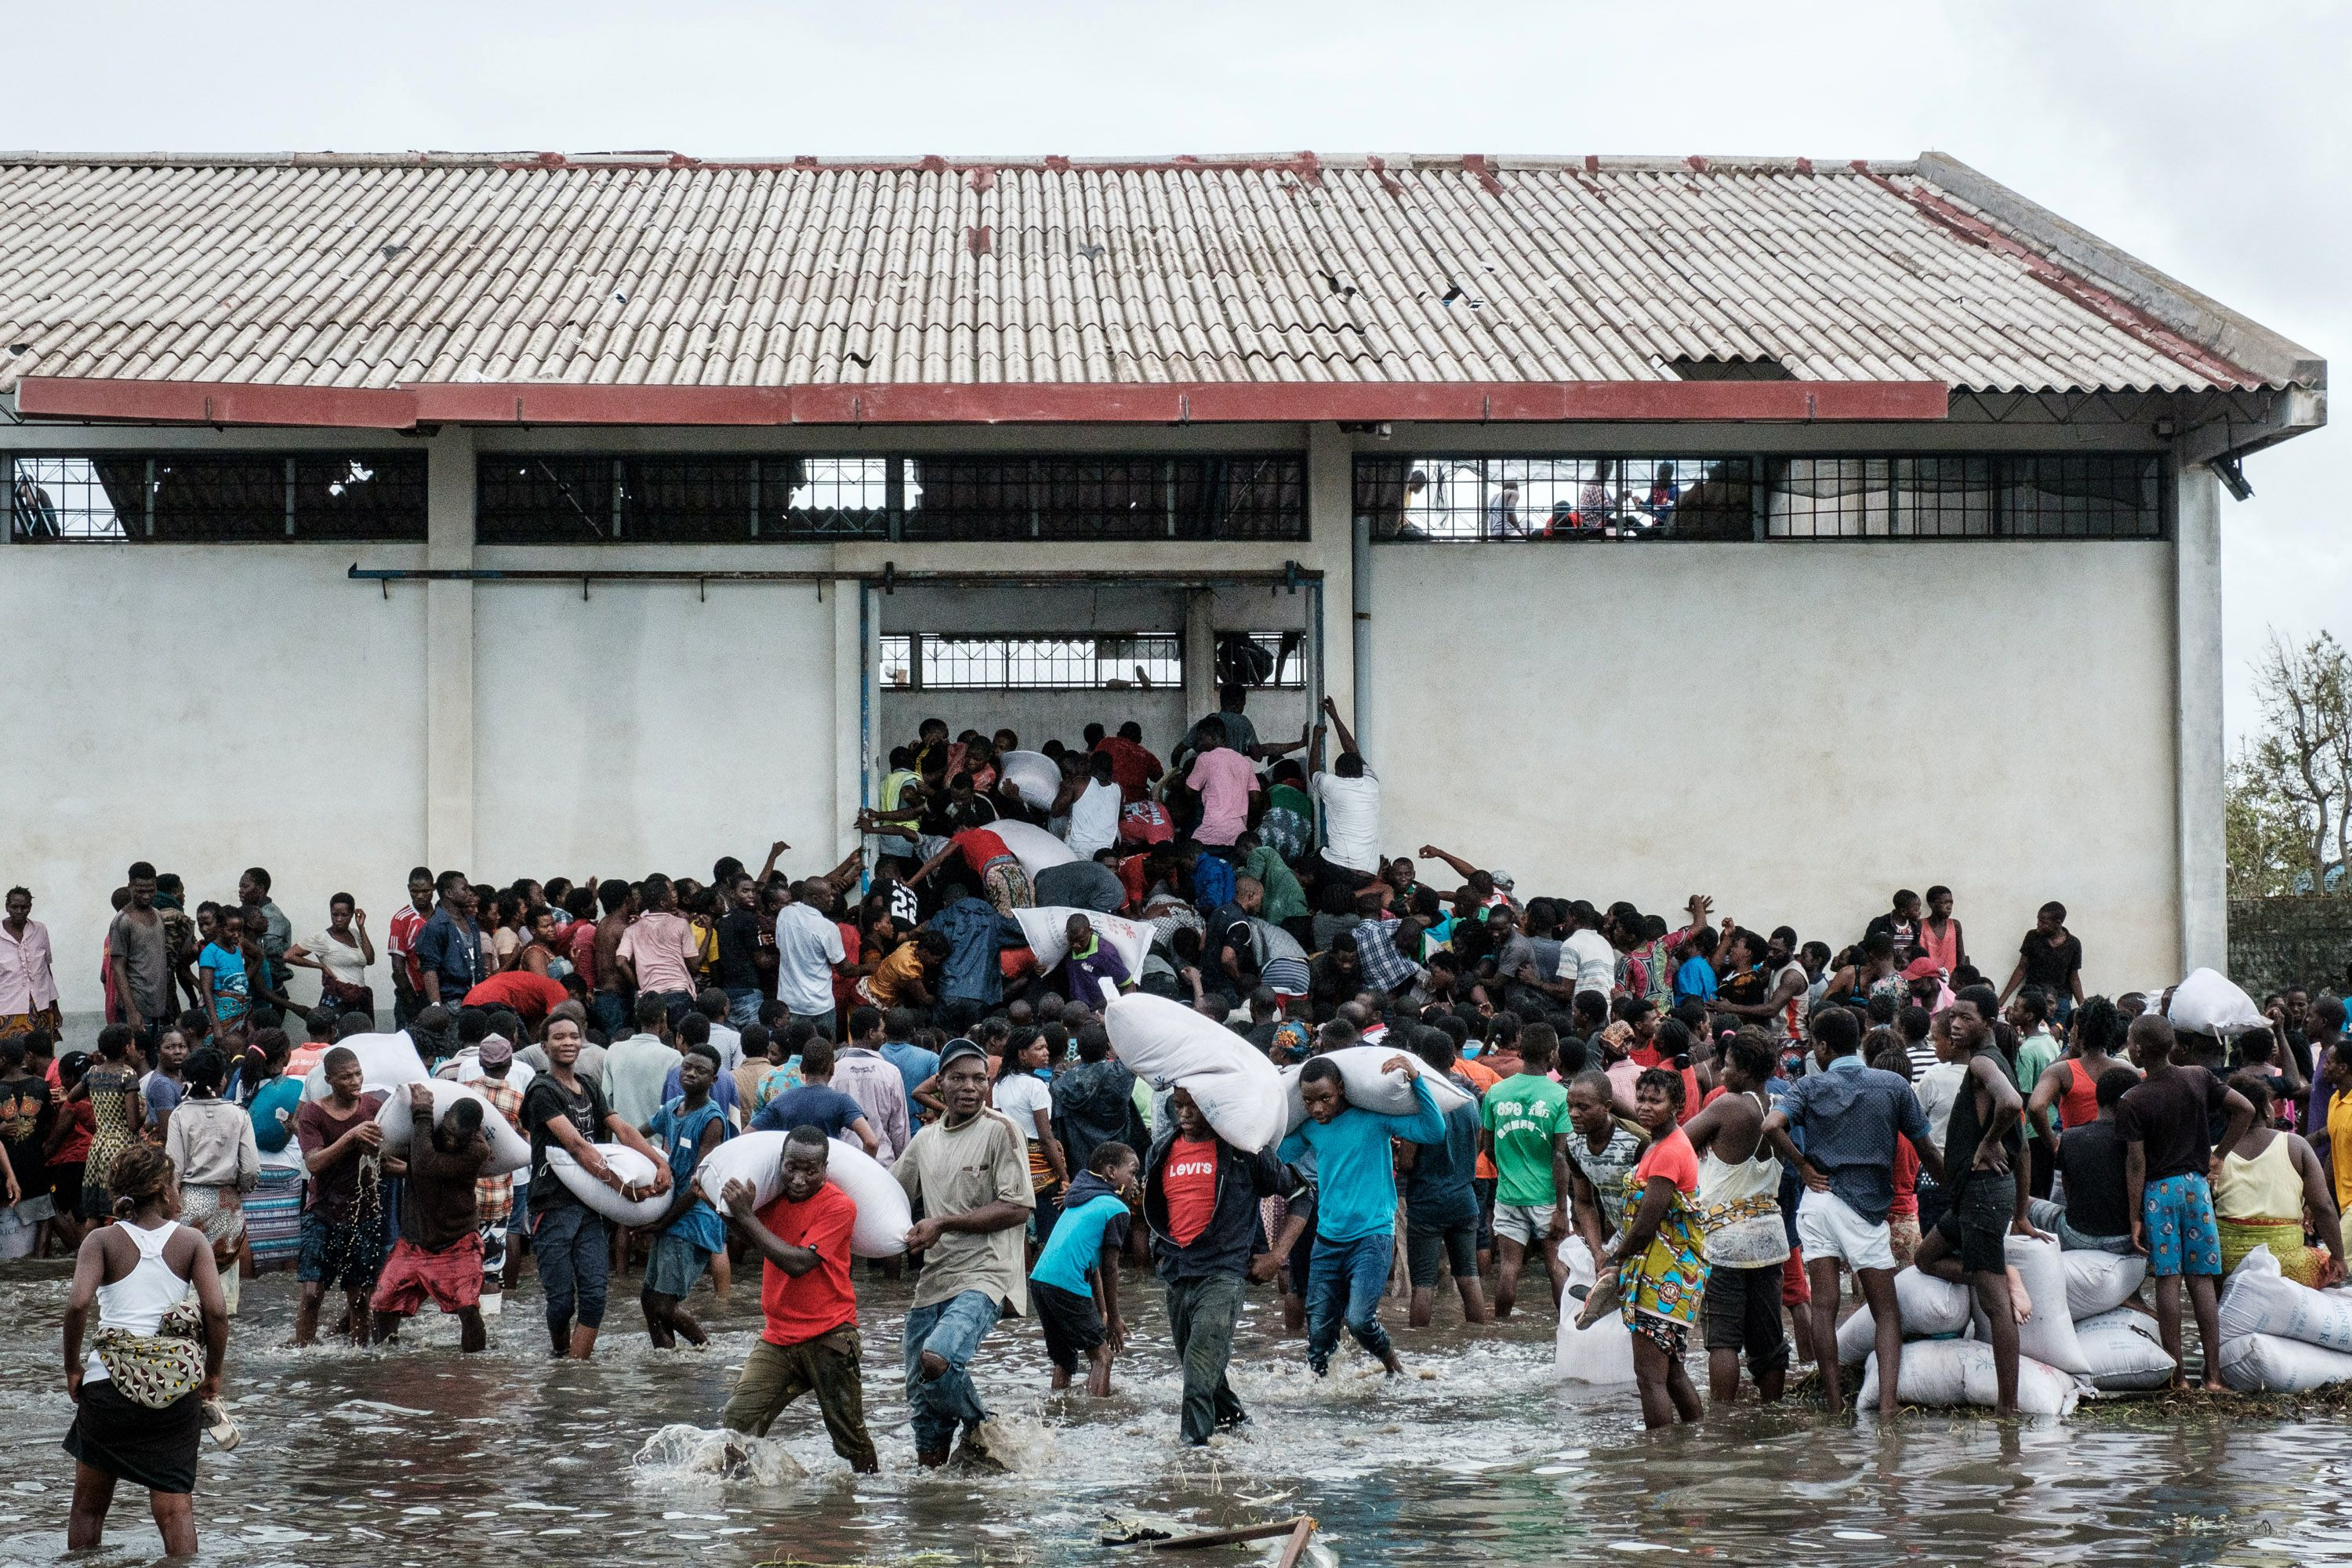 Survivors try to access aid in the wake of Cyclone Idai